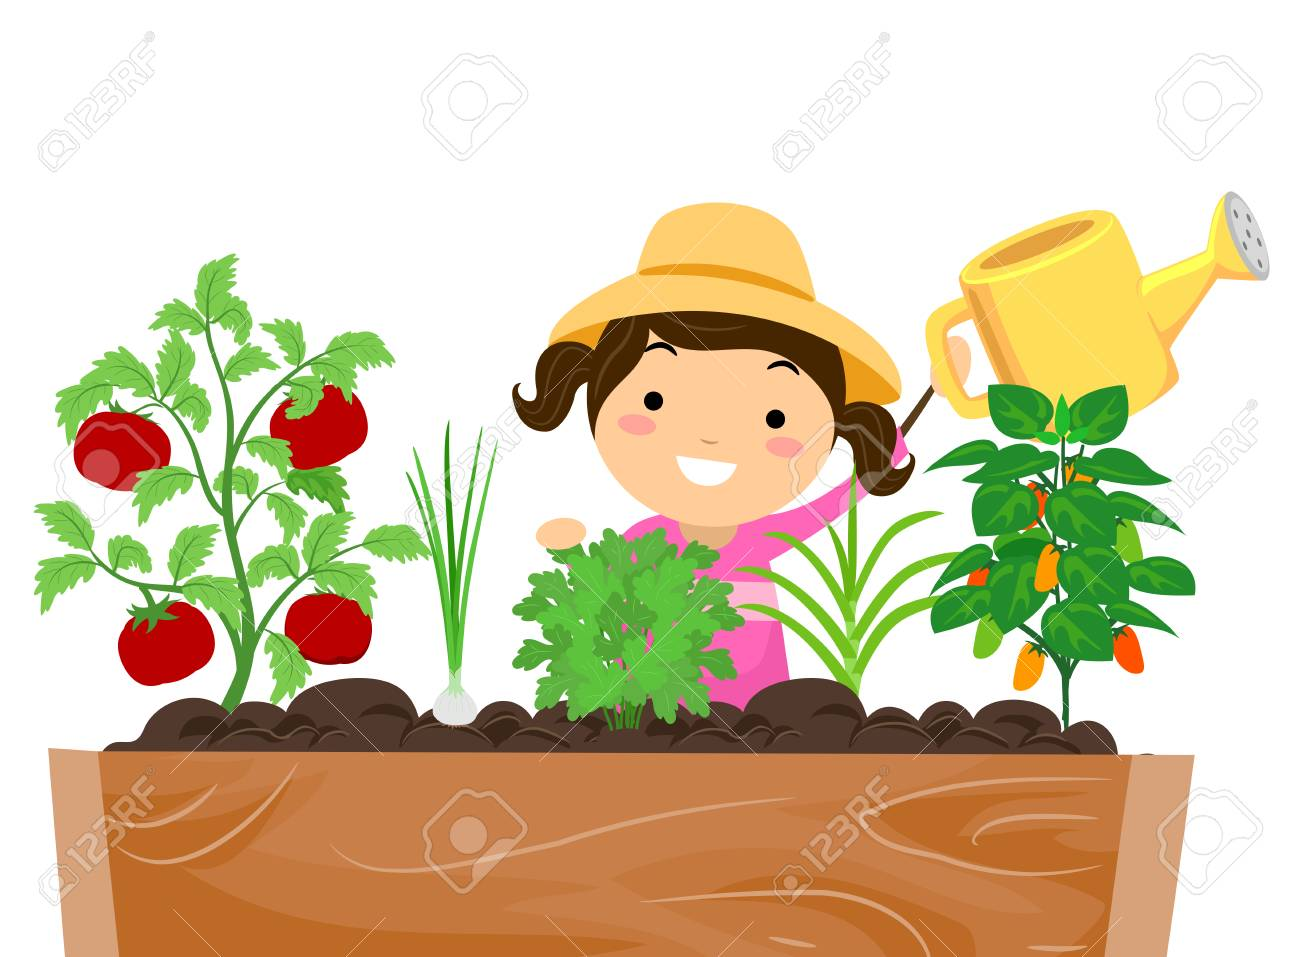 Illustration - Stickman Illustration of a Little Girl in a Sun Hat Watering  the Plants in Her Garden 40cae31b9a1d